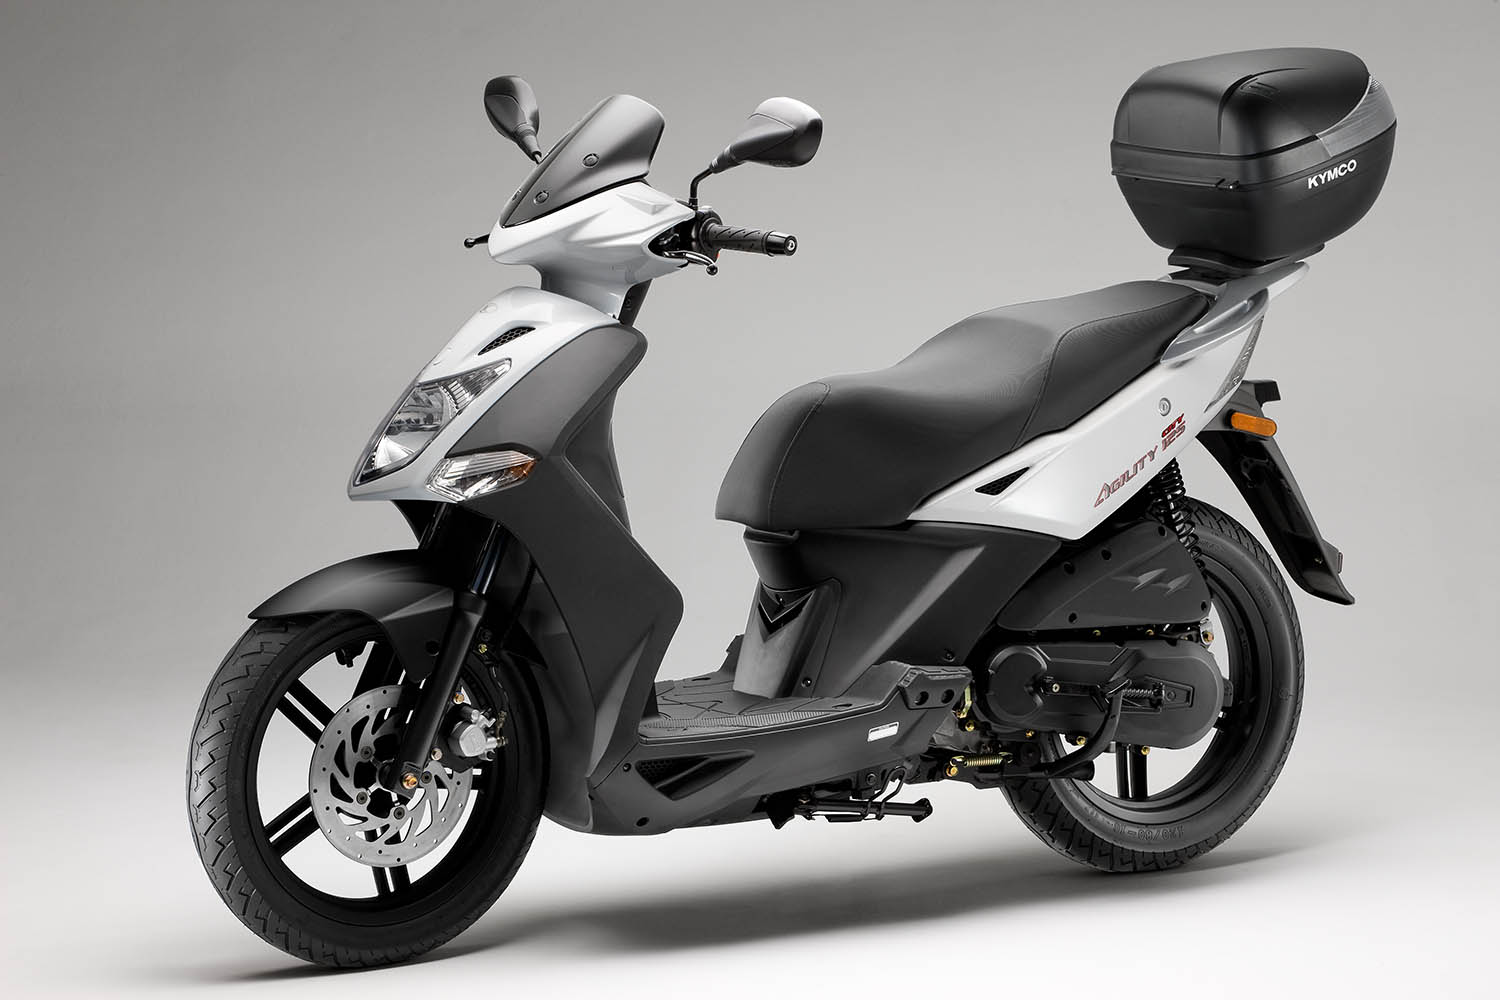 Kymco Agility City 125 images #101825